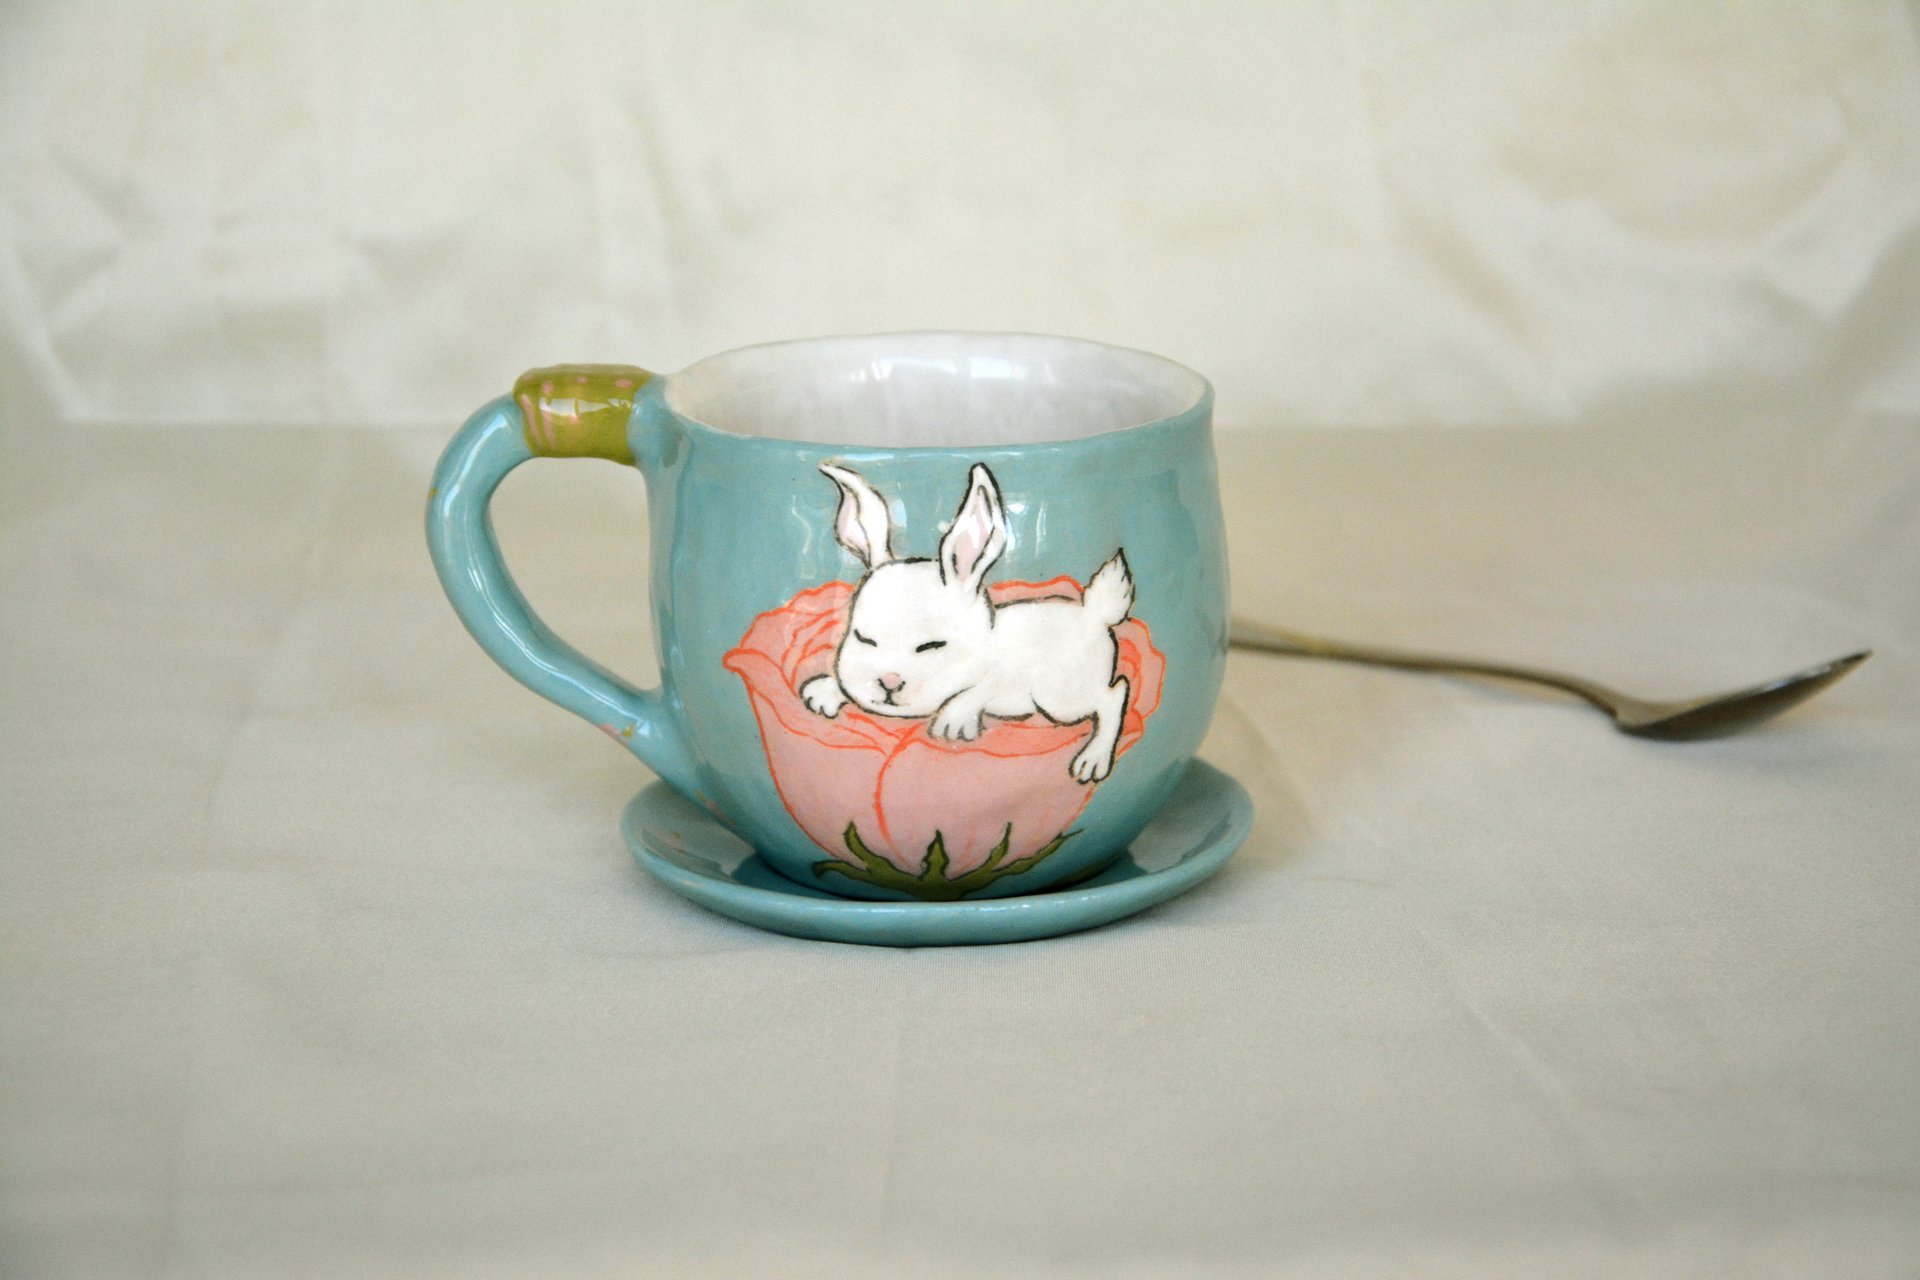 Blue cup with a picture of Sleeping bunny - Cups, glasses, mugs, height - 7 cm, volume - 250 ml, photo 1 of 3.